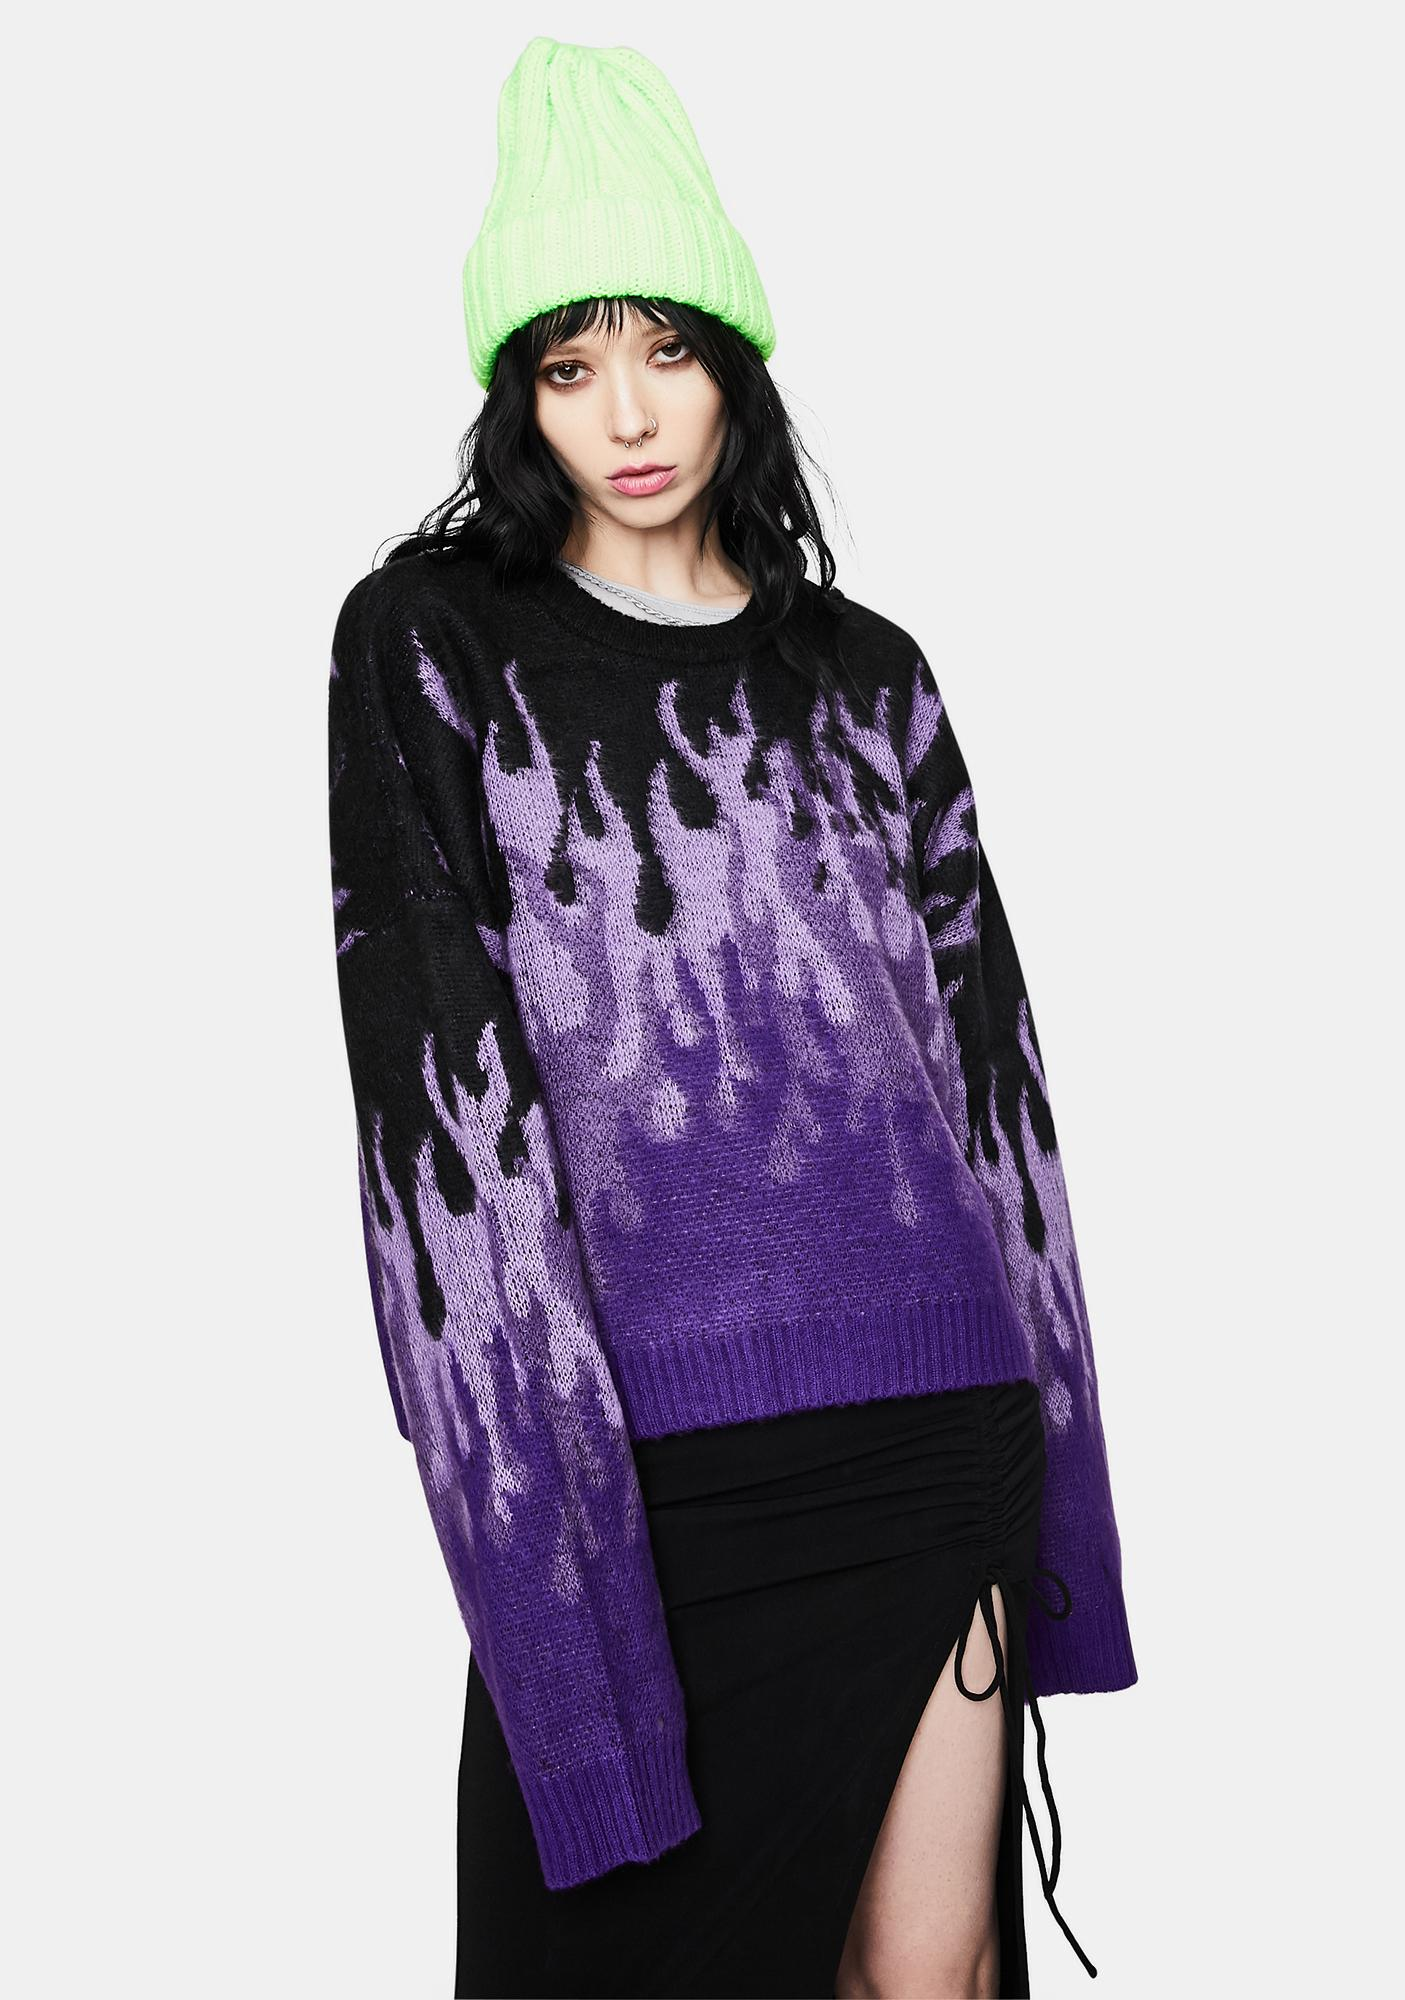 The Ragged Priest Revoly Flame Knit Sweater